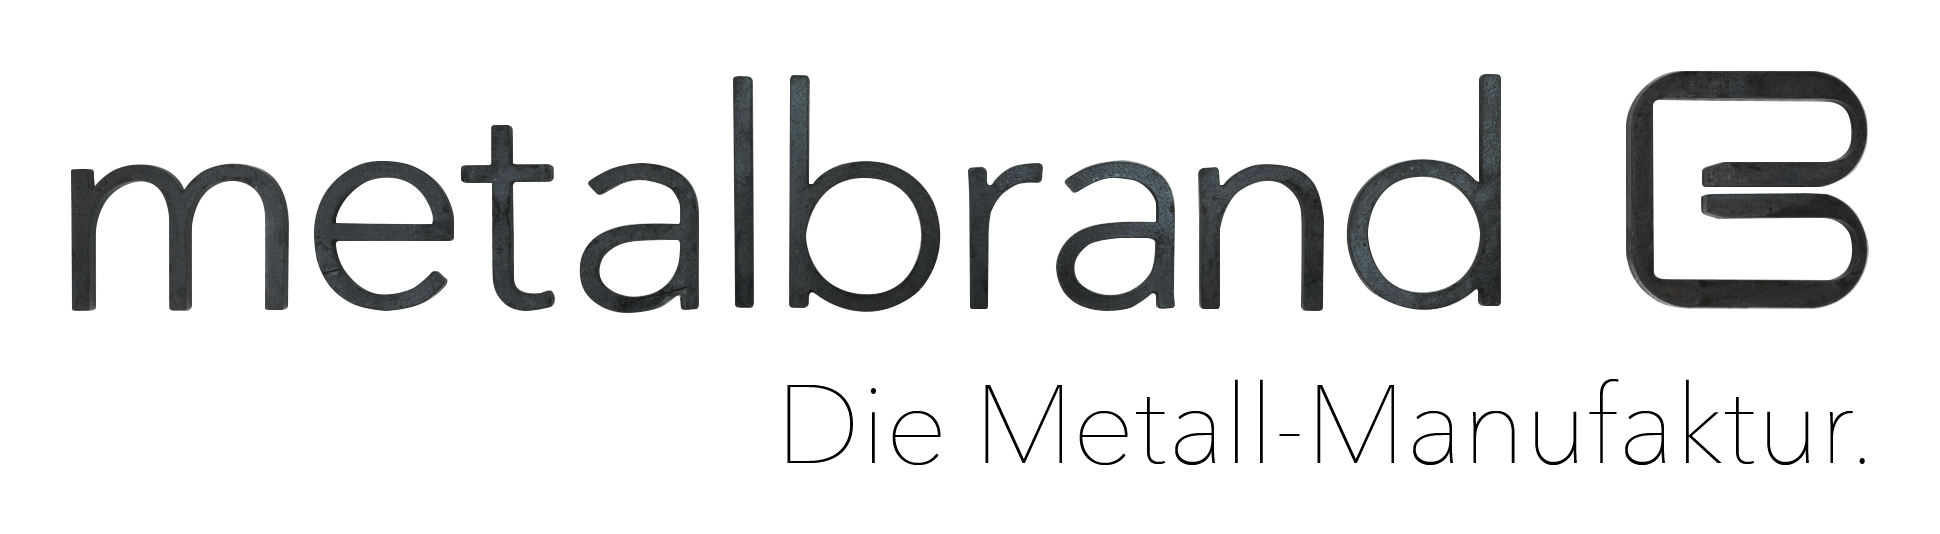 metalbrand – Die Metall-Manufaktur